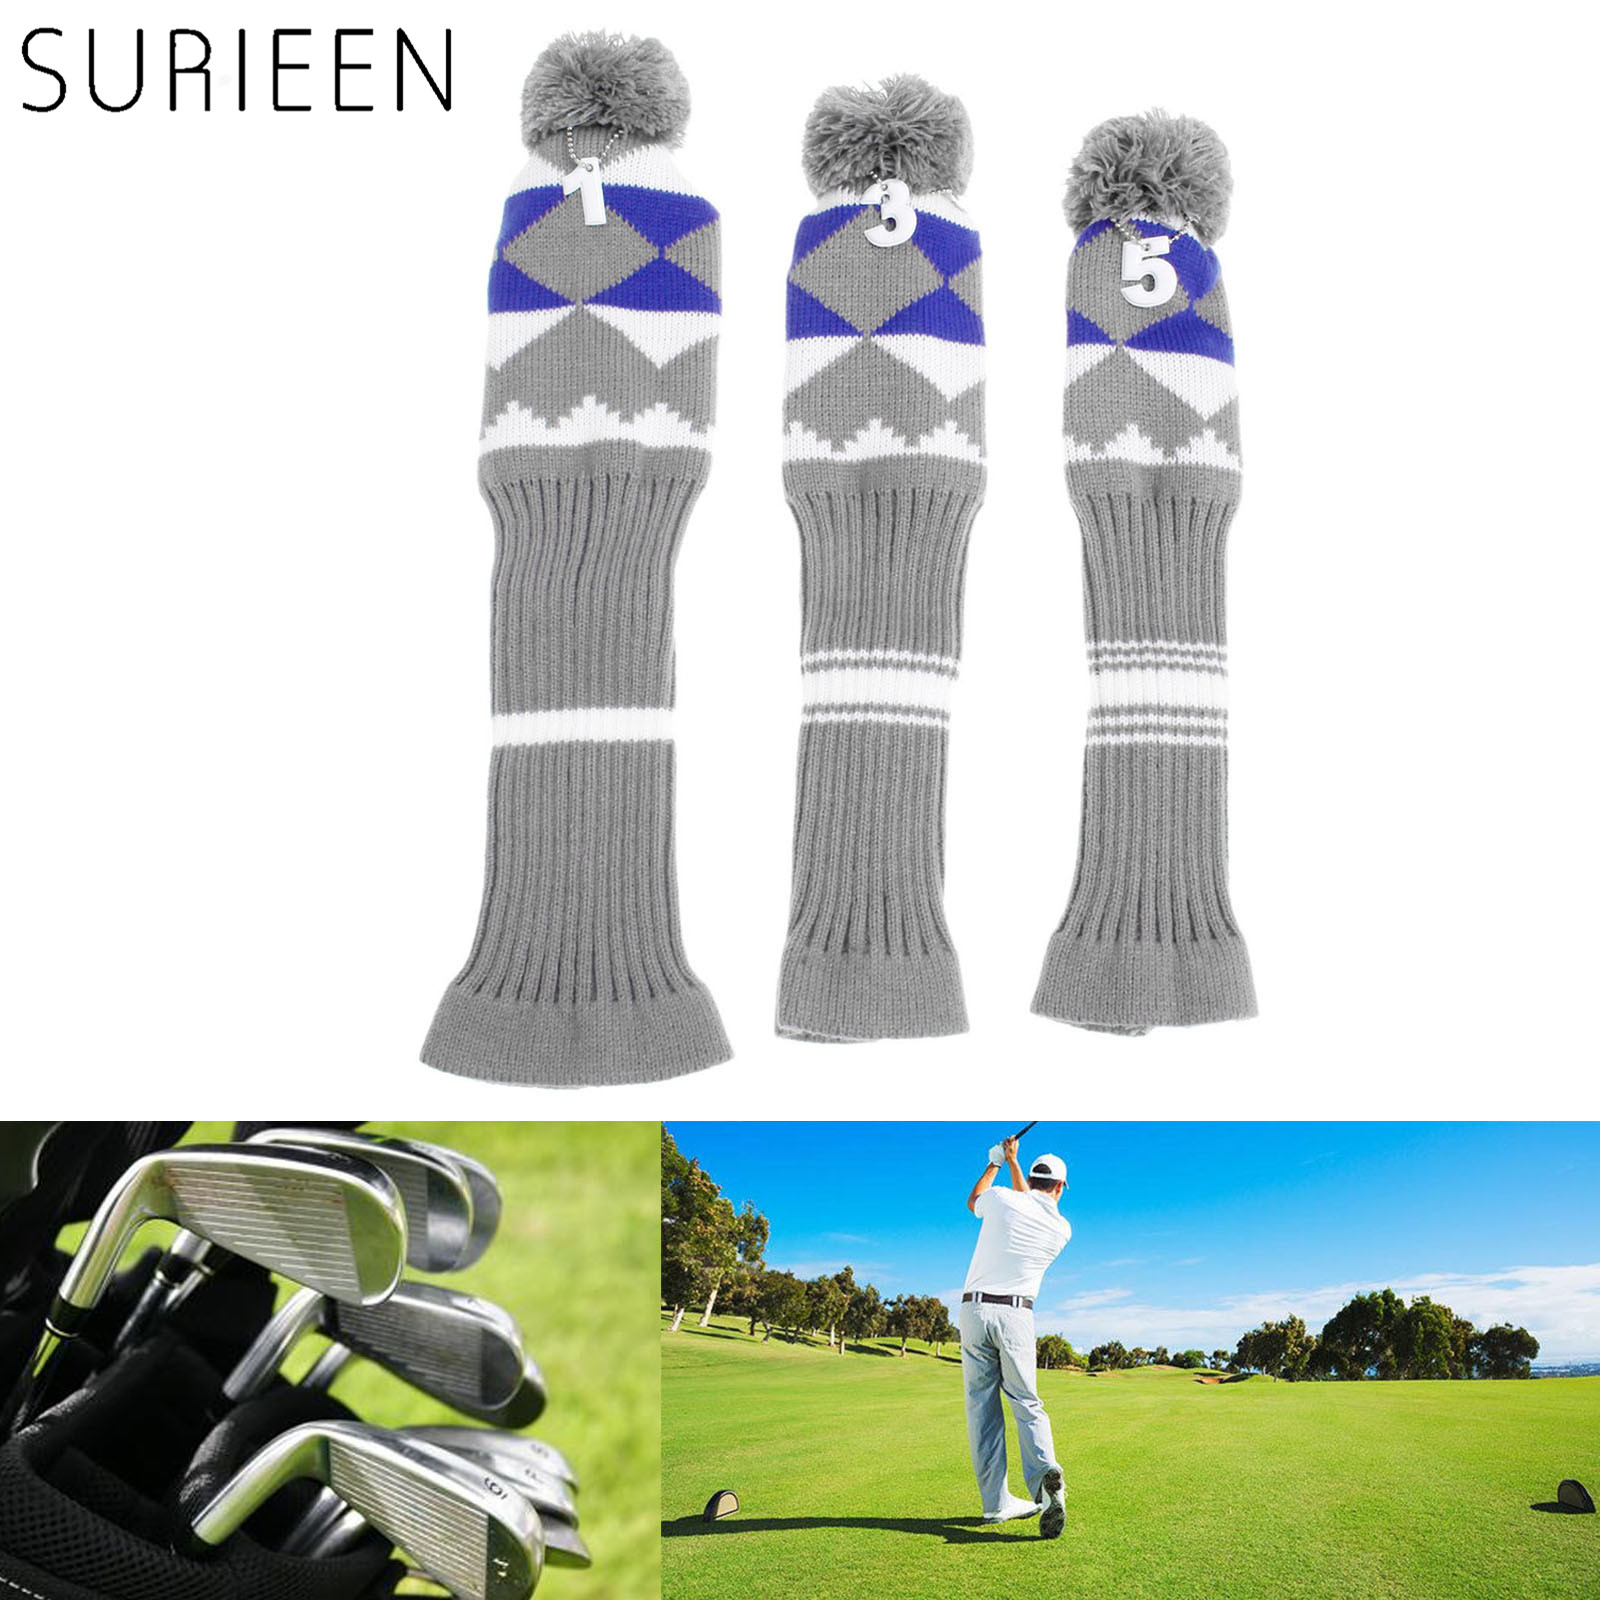 SURIEEN 3 Pcs Pom Pom Golf Woods Club Head Covers Headcovers Knitted Long-neck Sock Golf Club Cover Headcover Soft Protect Set